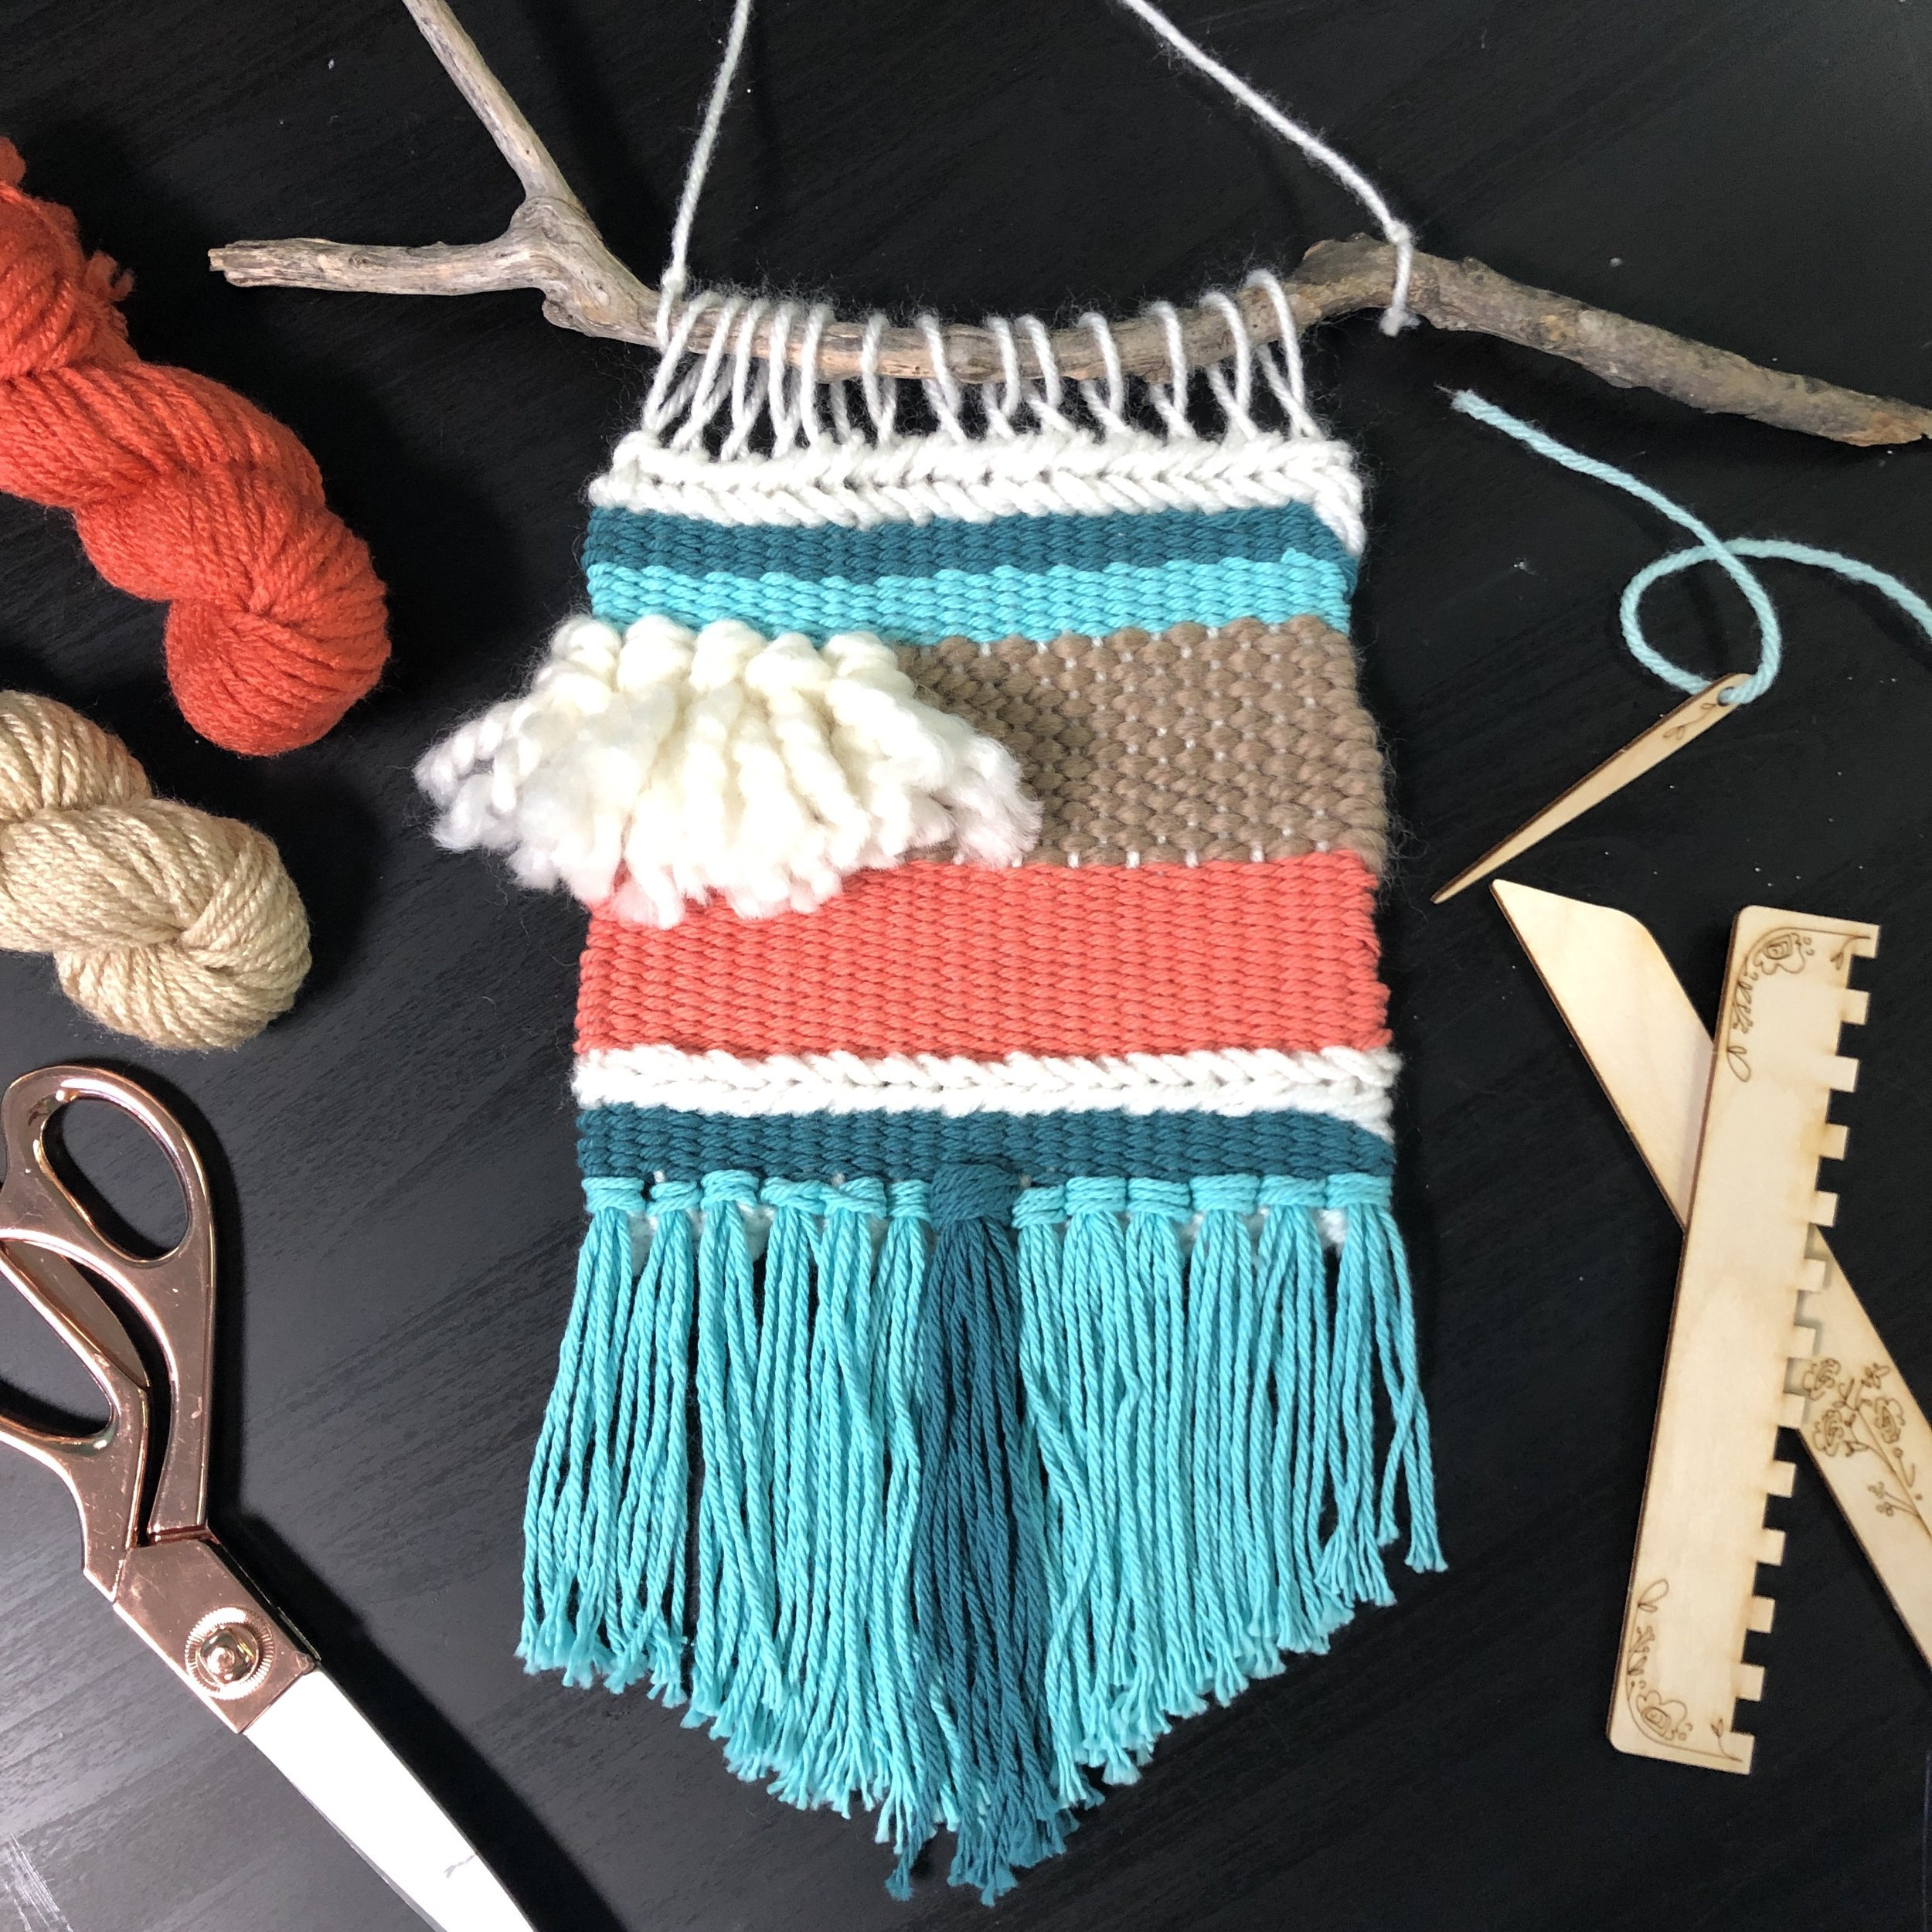 $55 - Weaving Workshop + Loom Kit  Learn to weave and make a wall hanging. + Take home a loom and tools.